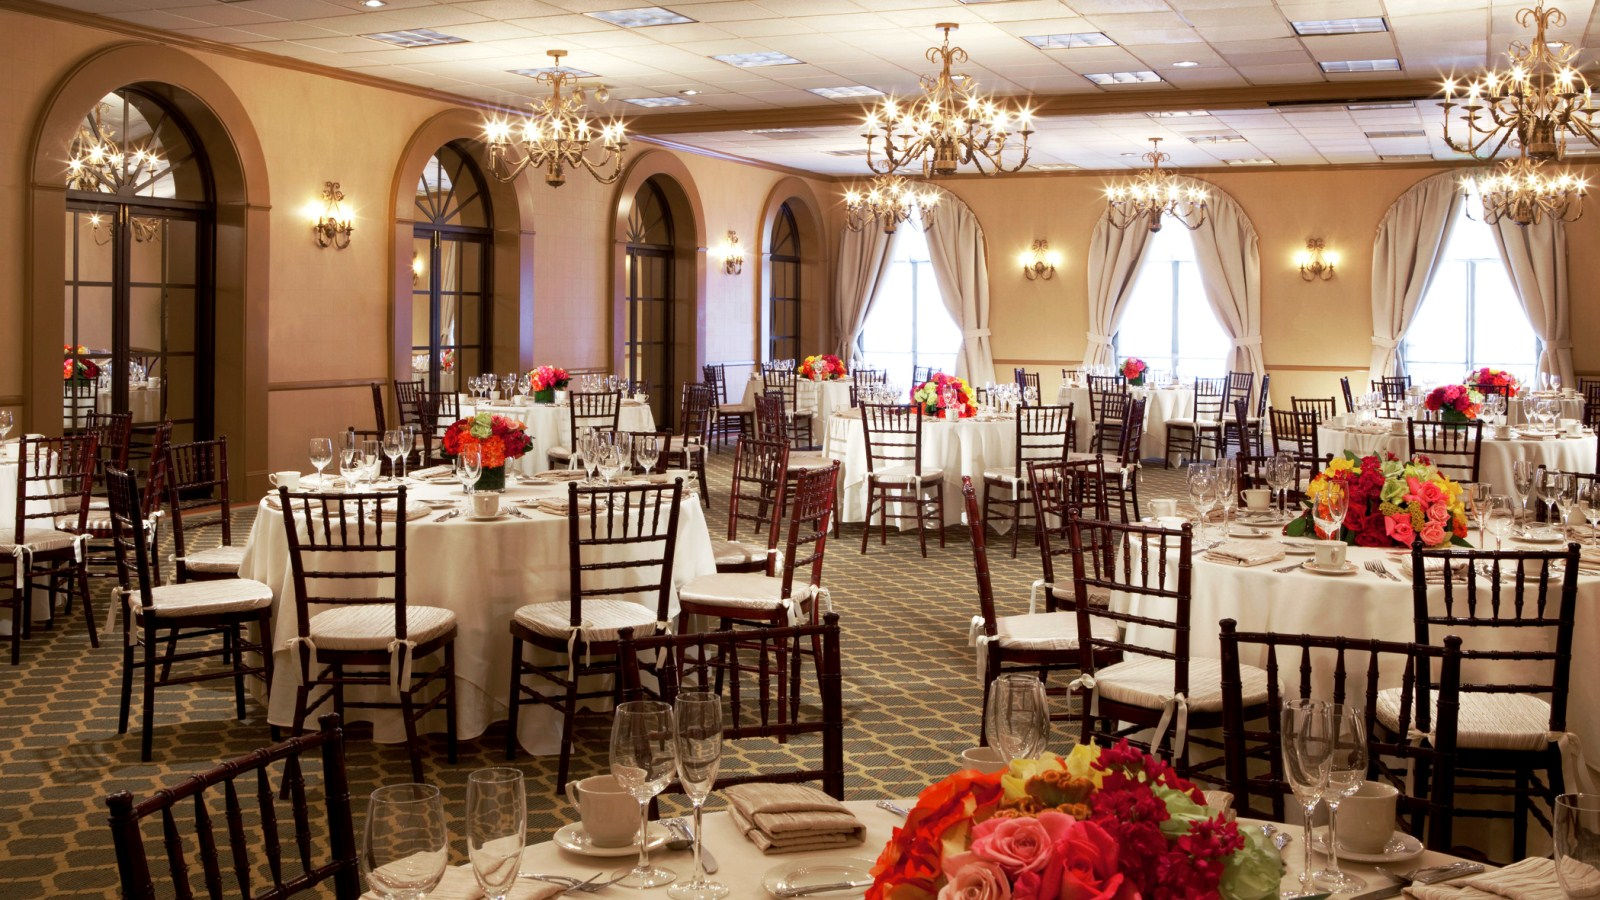 Pasadena Wedding Venues - Wedding Venue